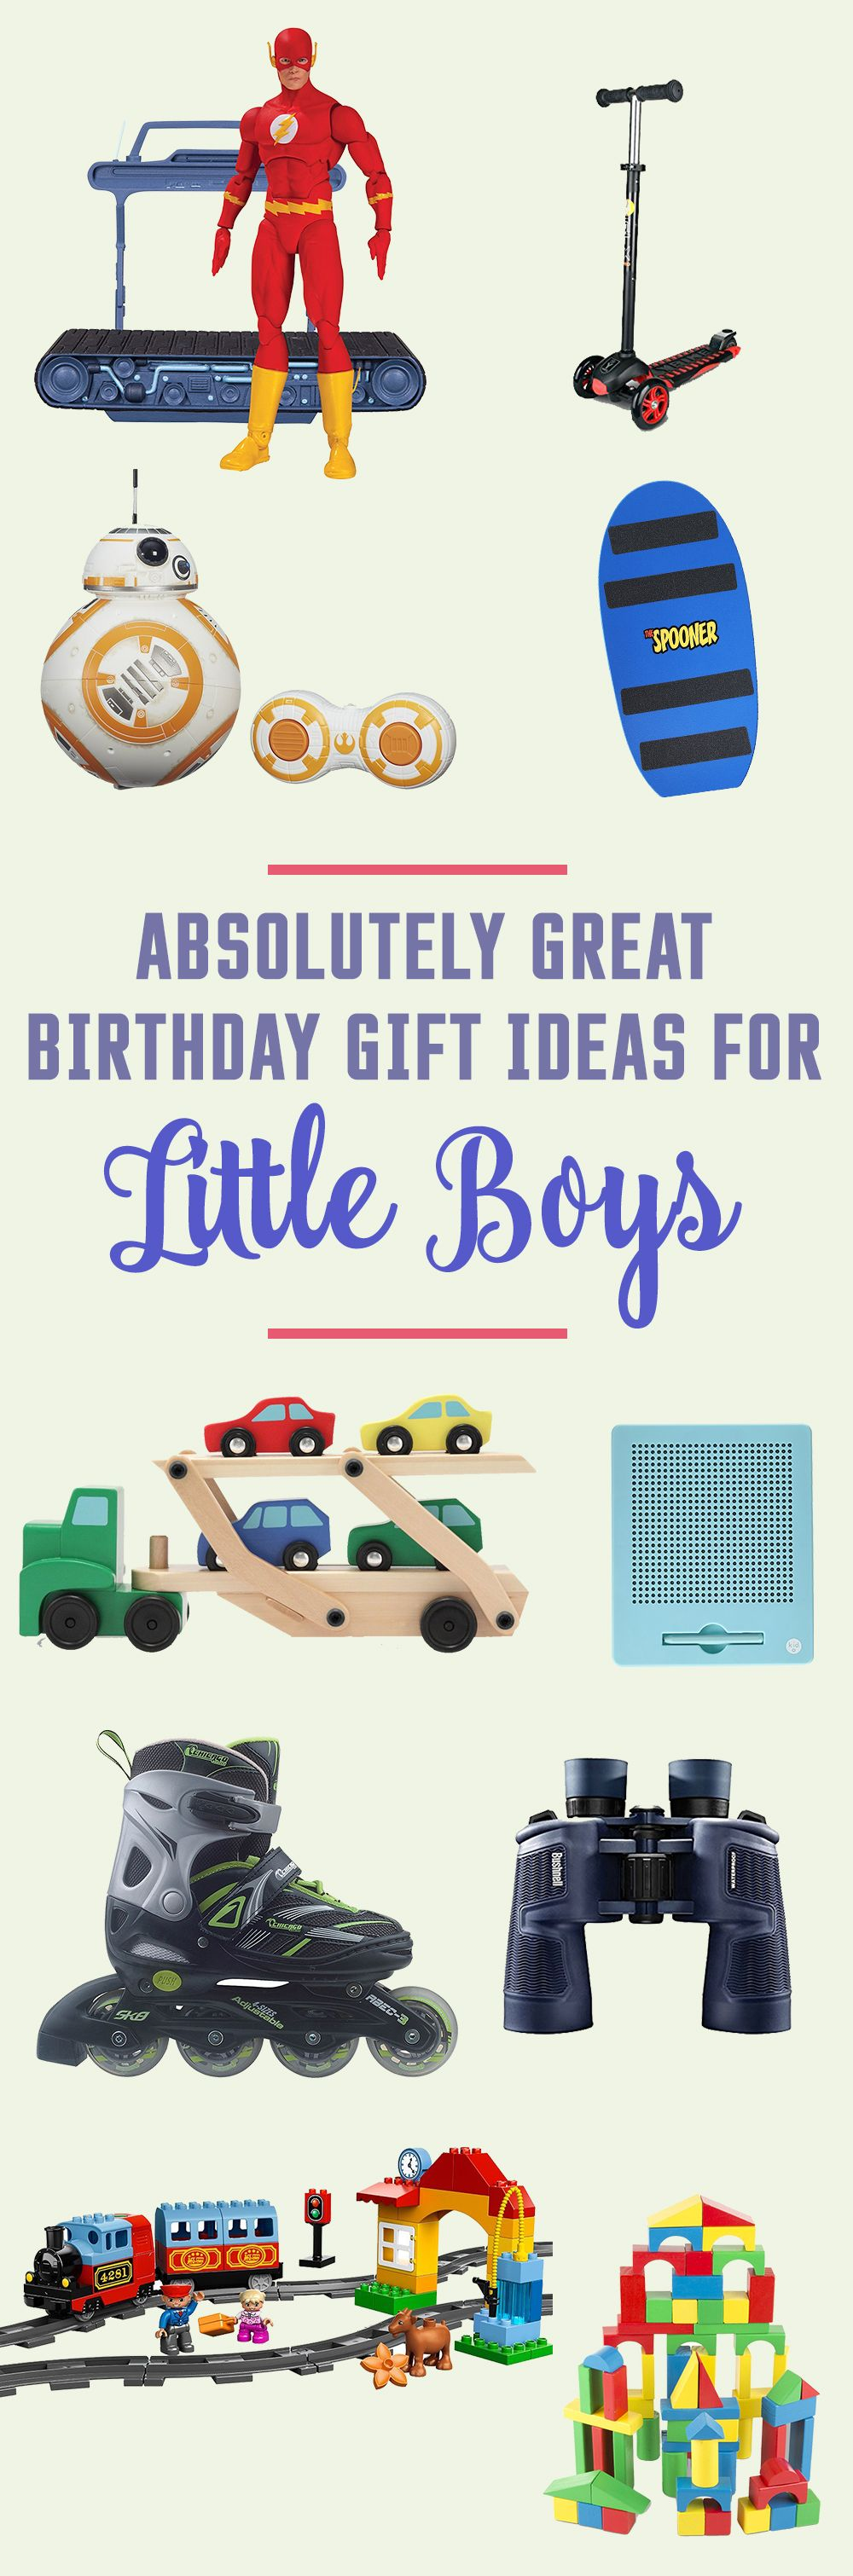 21 Absolutely Great Birthday Gift Ideas for Little Boys – Gift Ideas For All